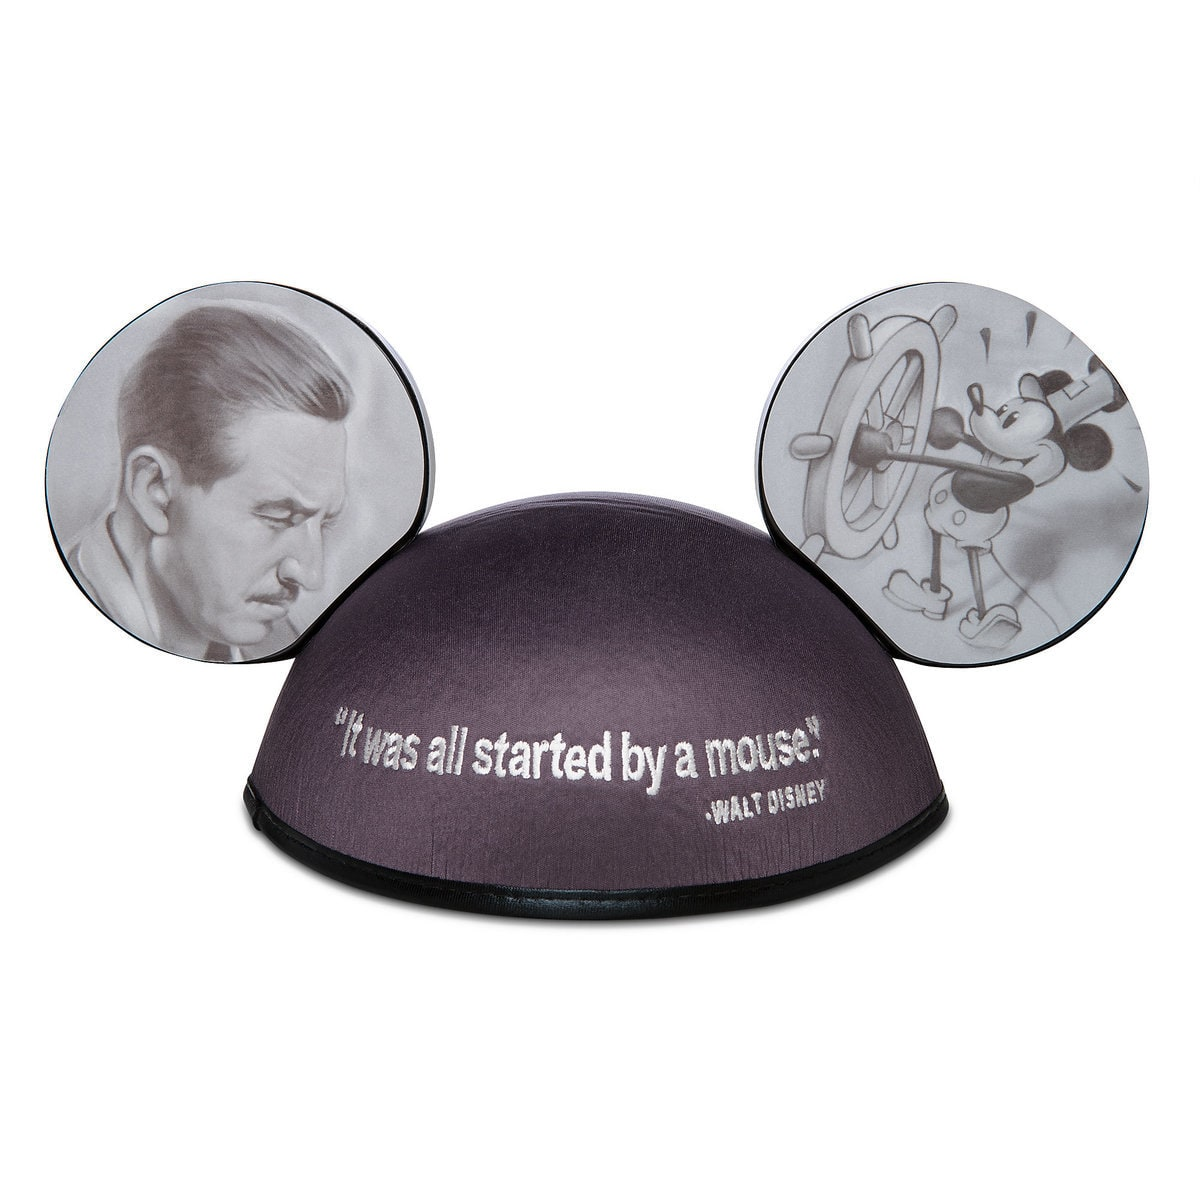 Steamboat Willie Mickey Ears By Renowned Artist Noah 3